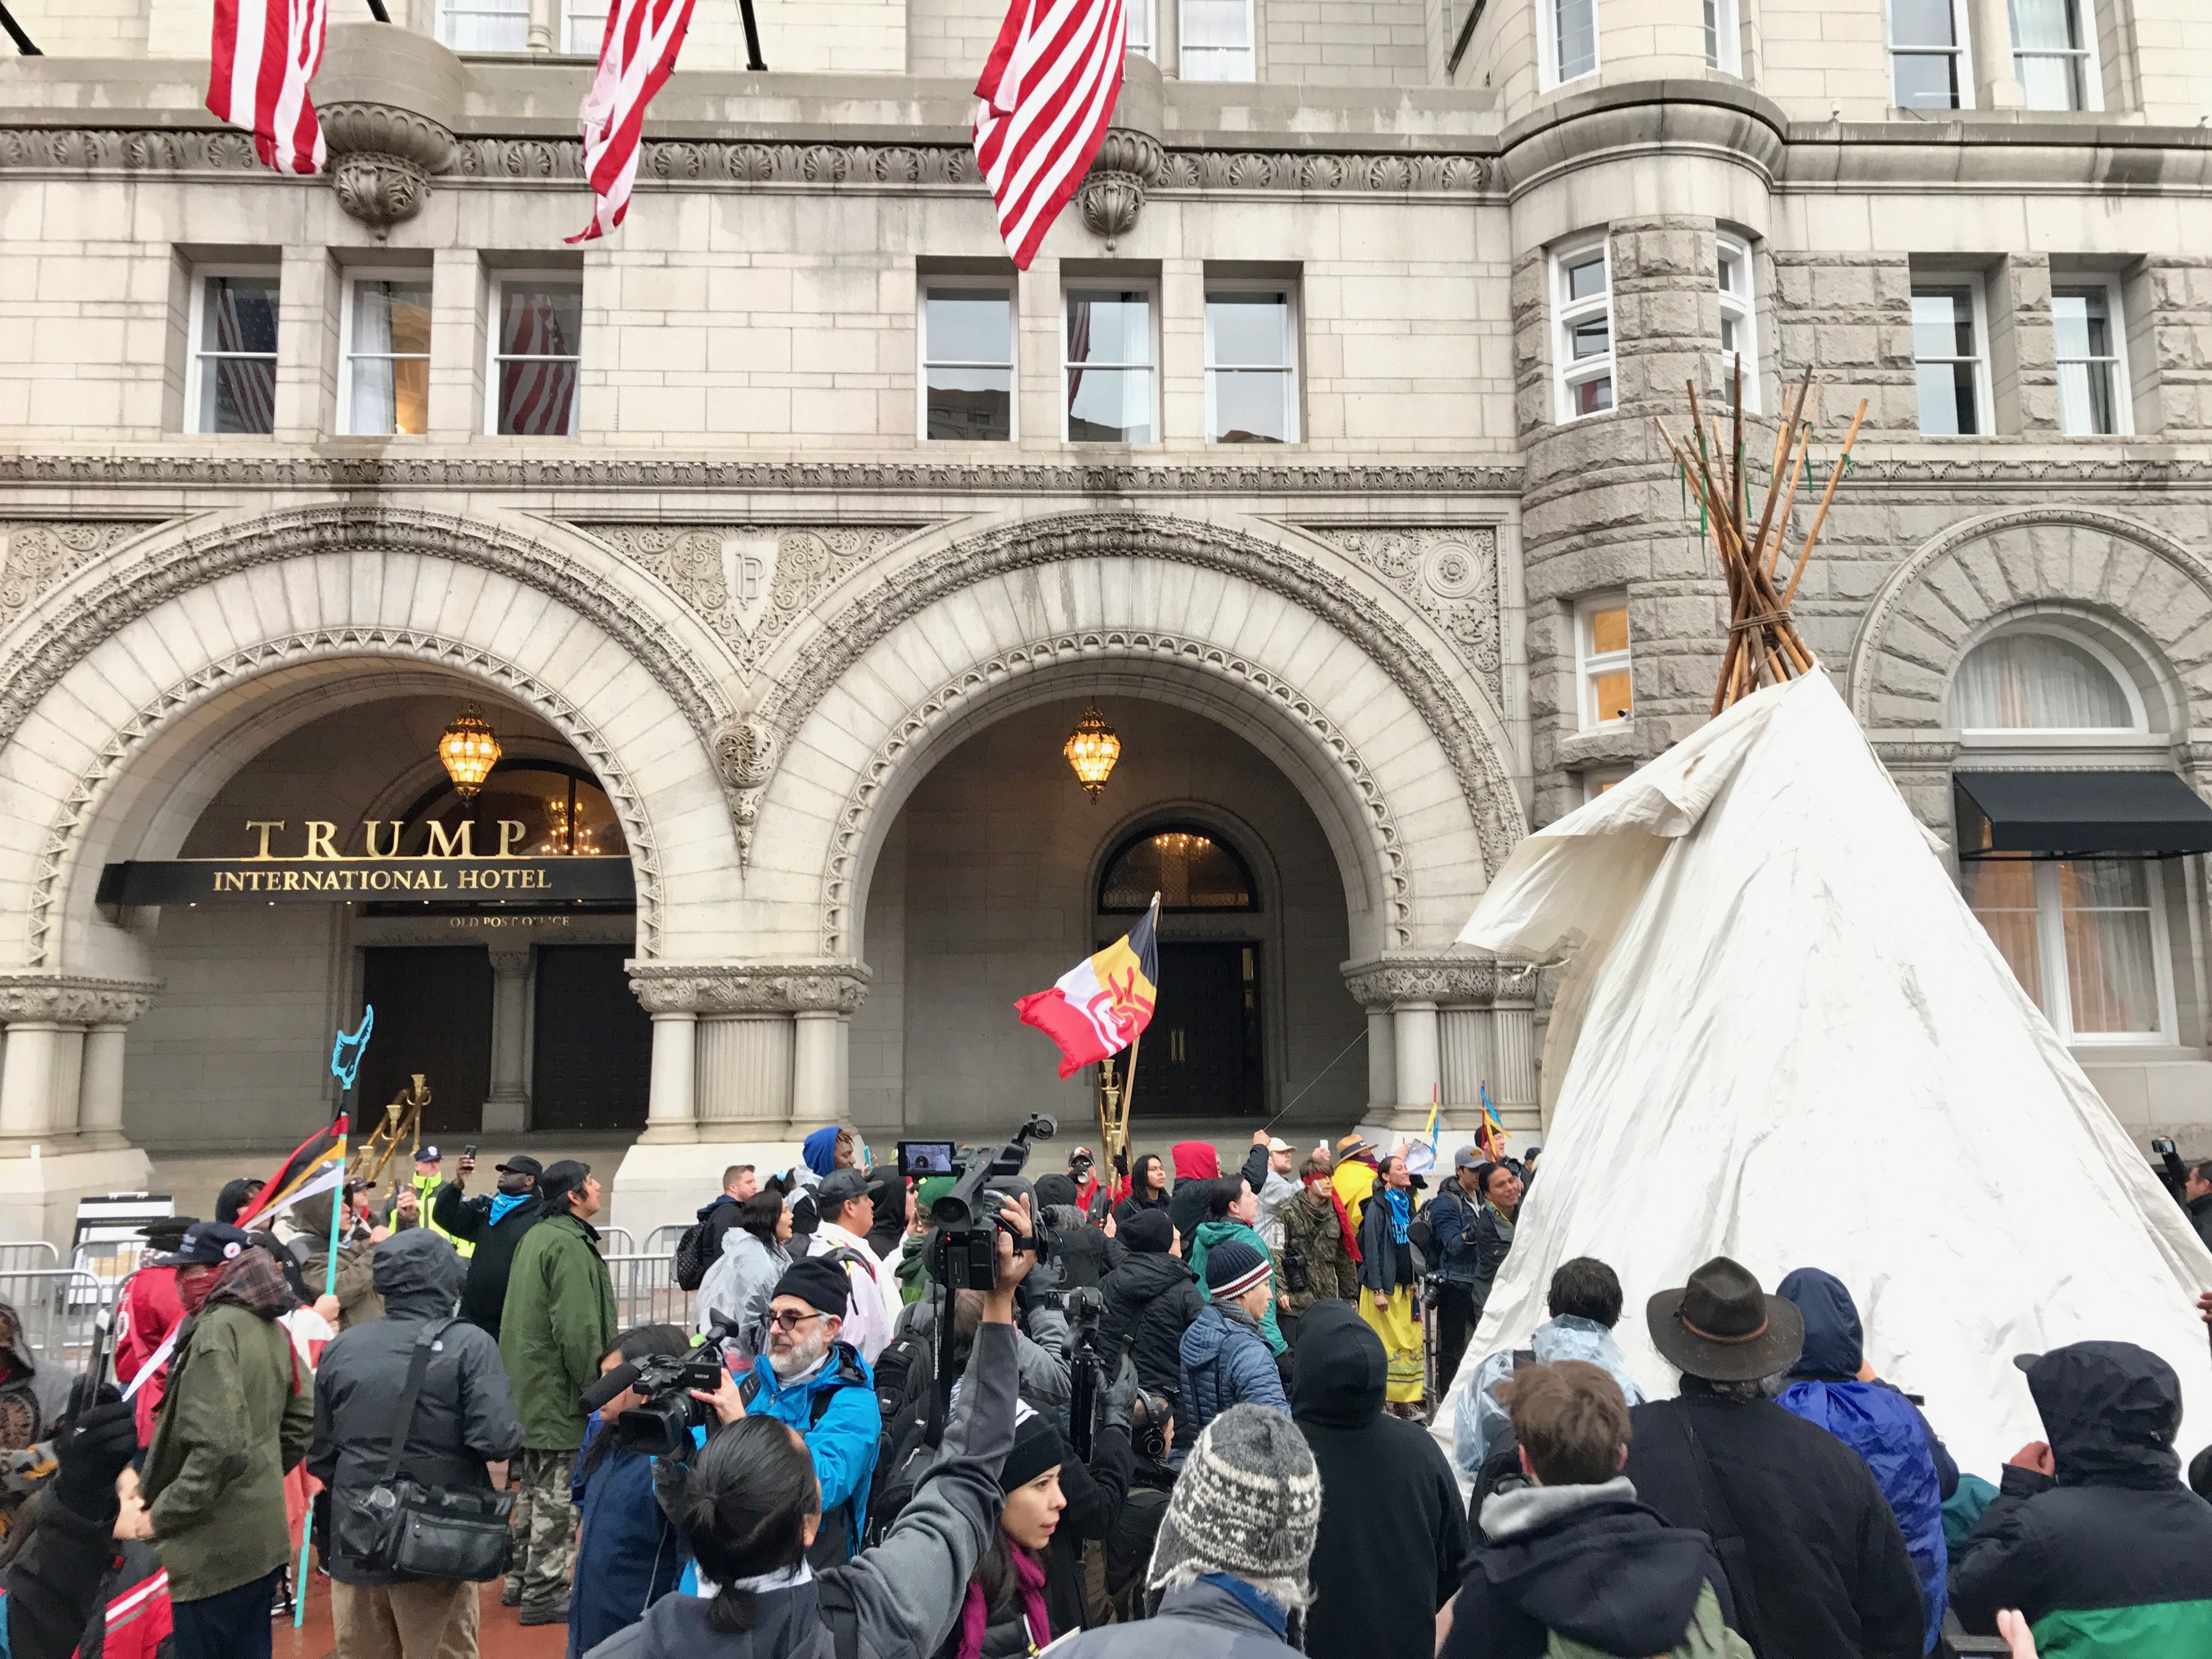 Indigenous activists make presence known for climate march in D.C.